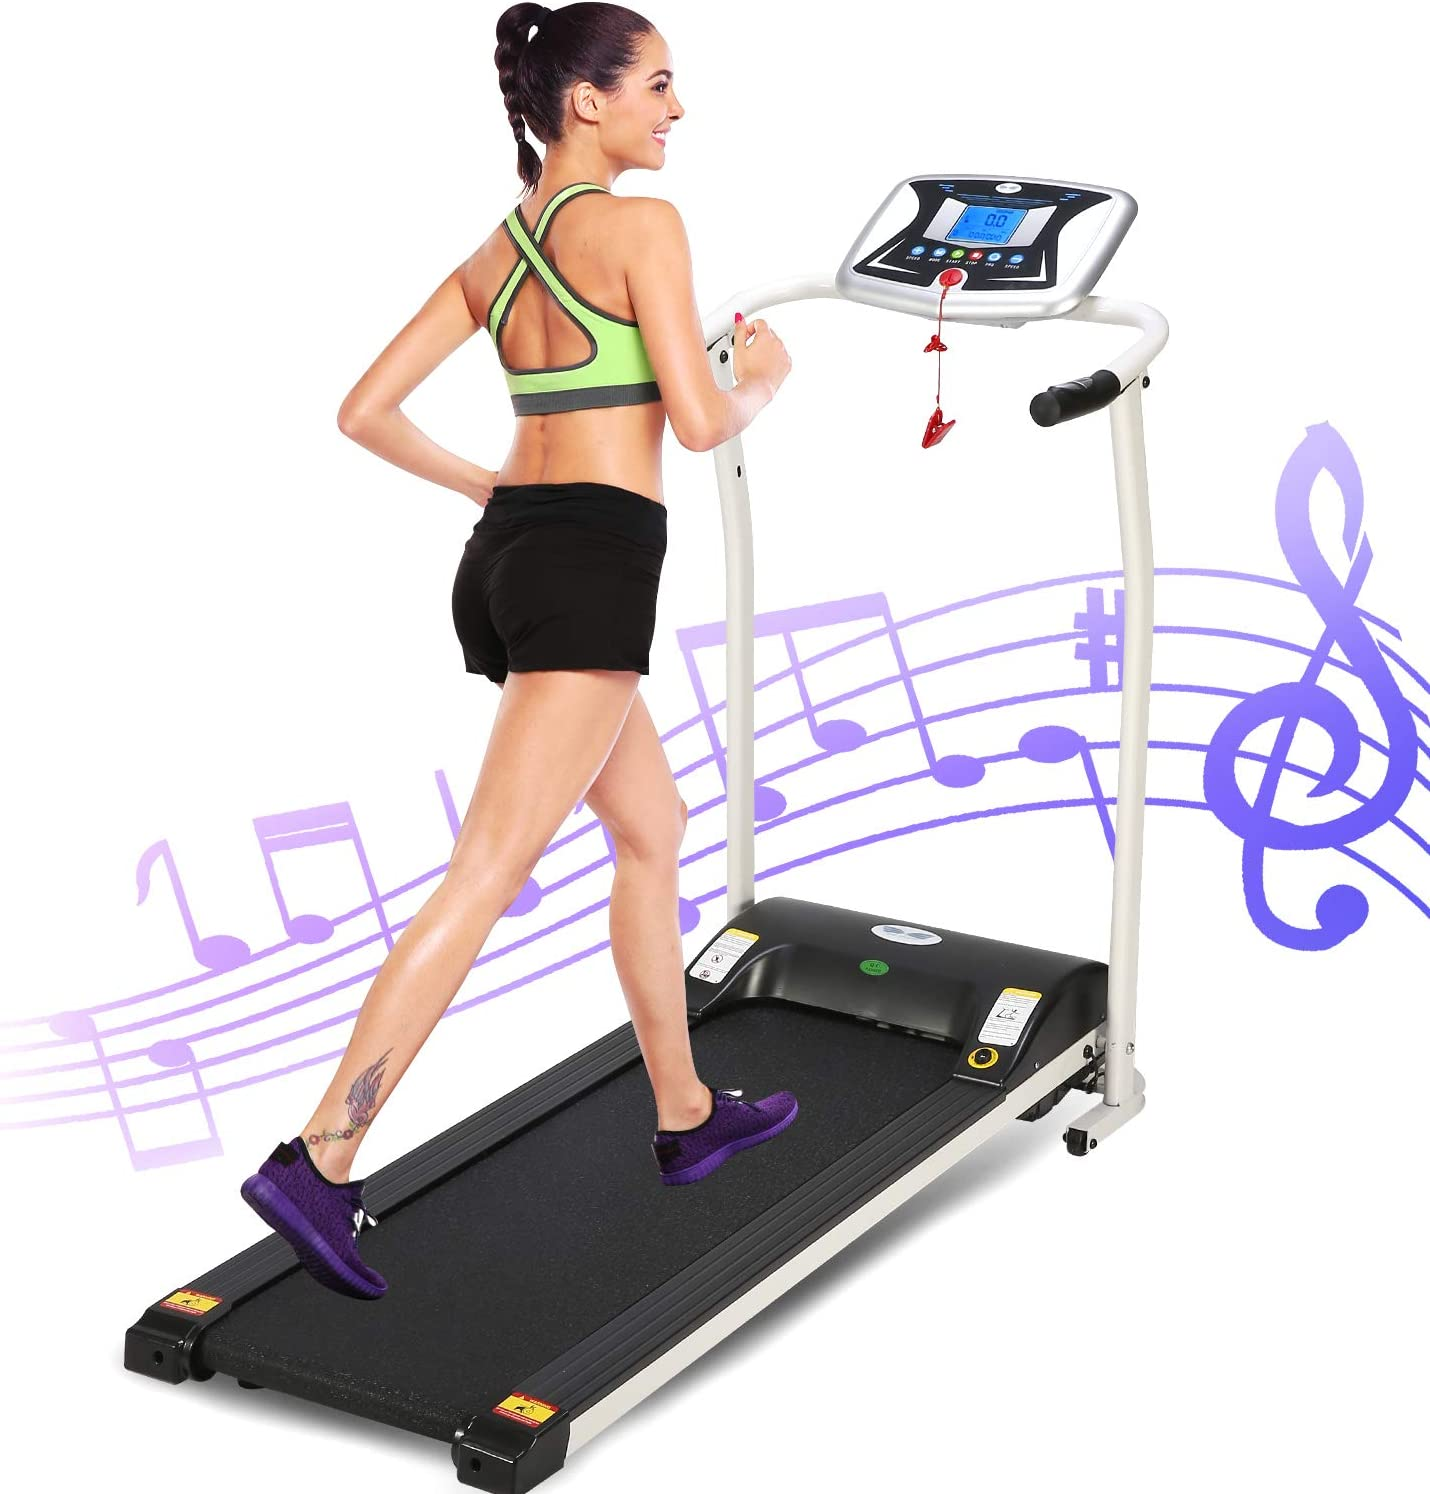 Details about  /ANCHEER Magnetic Elliptical Machine Exercise Fitness Home Fitness Sport WORKOUT